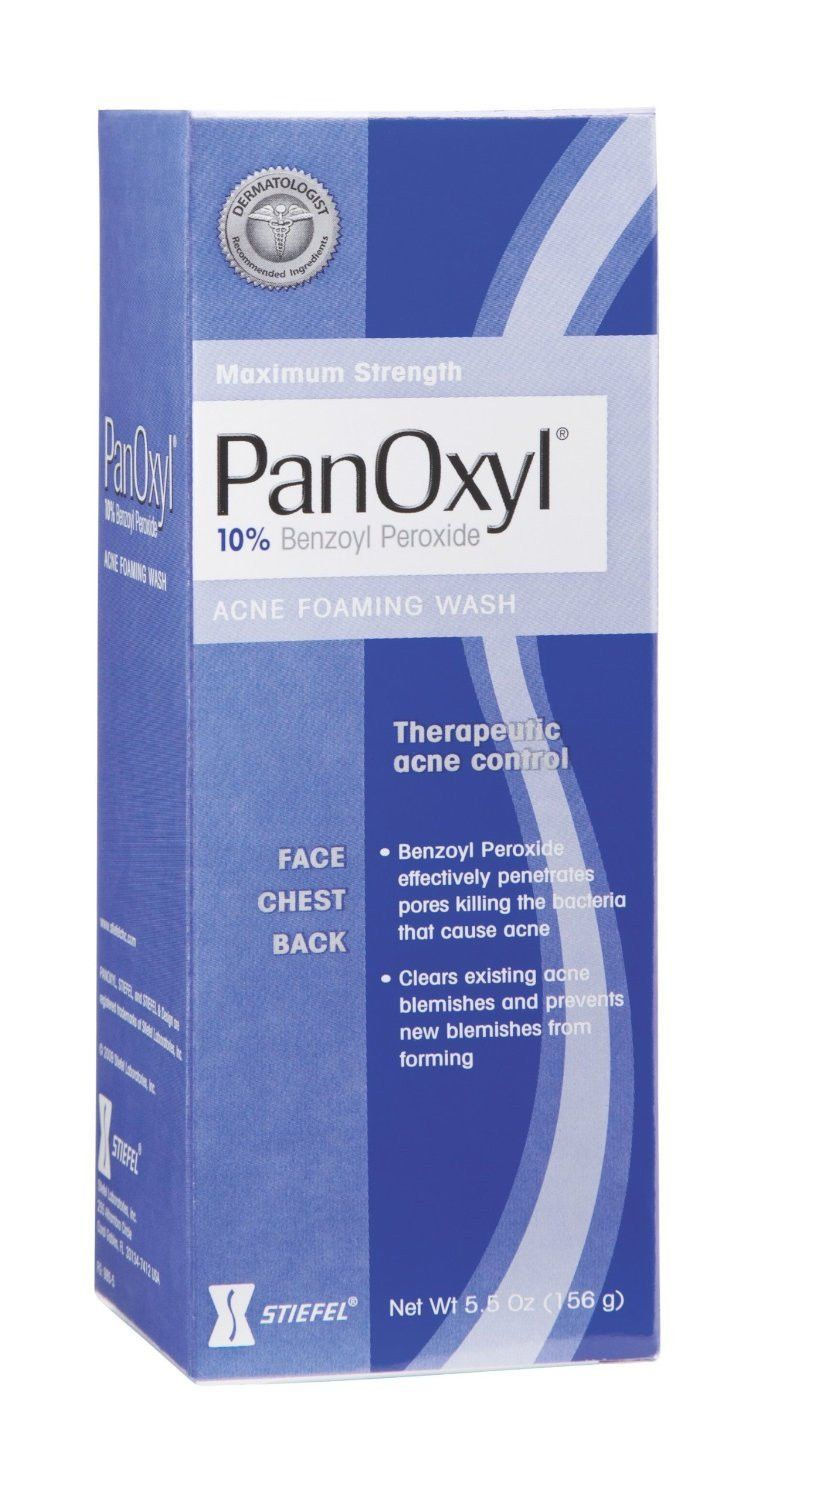 Panoxyl 10 Acne Foaming Wash Maximum Strength 5 5 Oz Panoxyl Acne Wash Benzoyl Peroxide